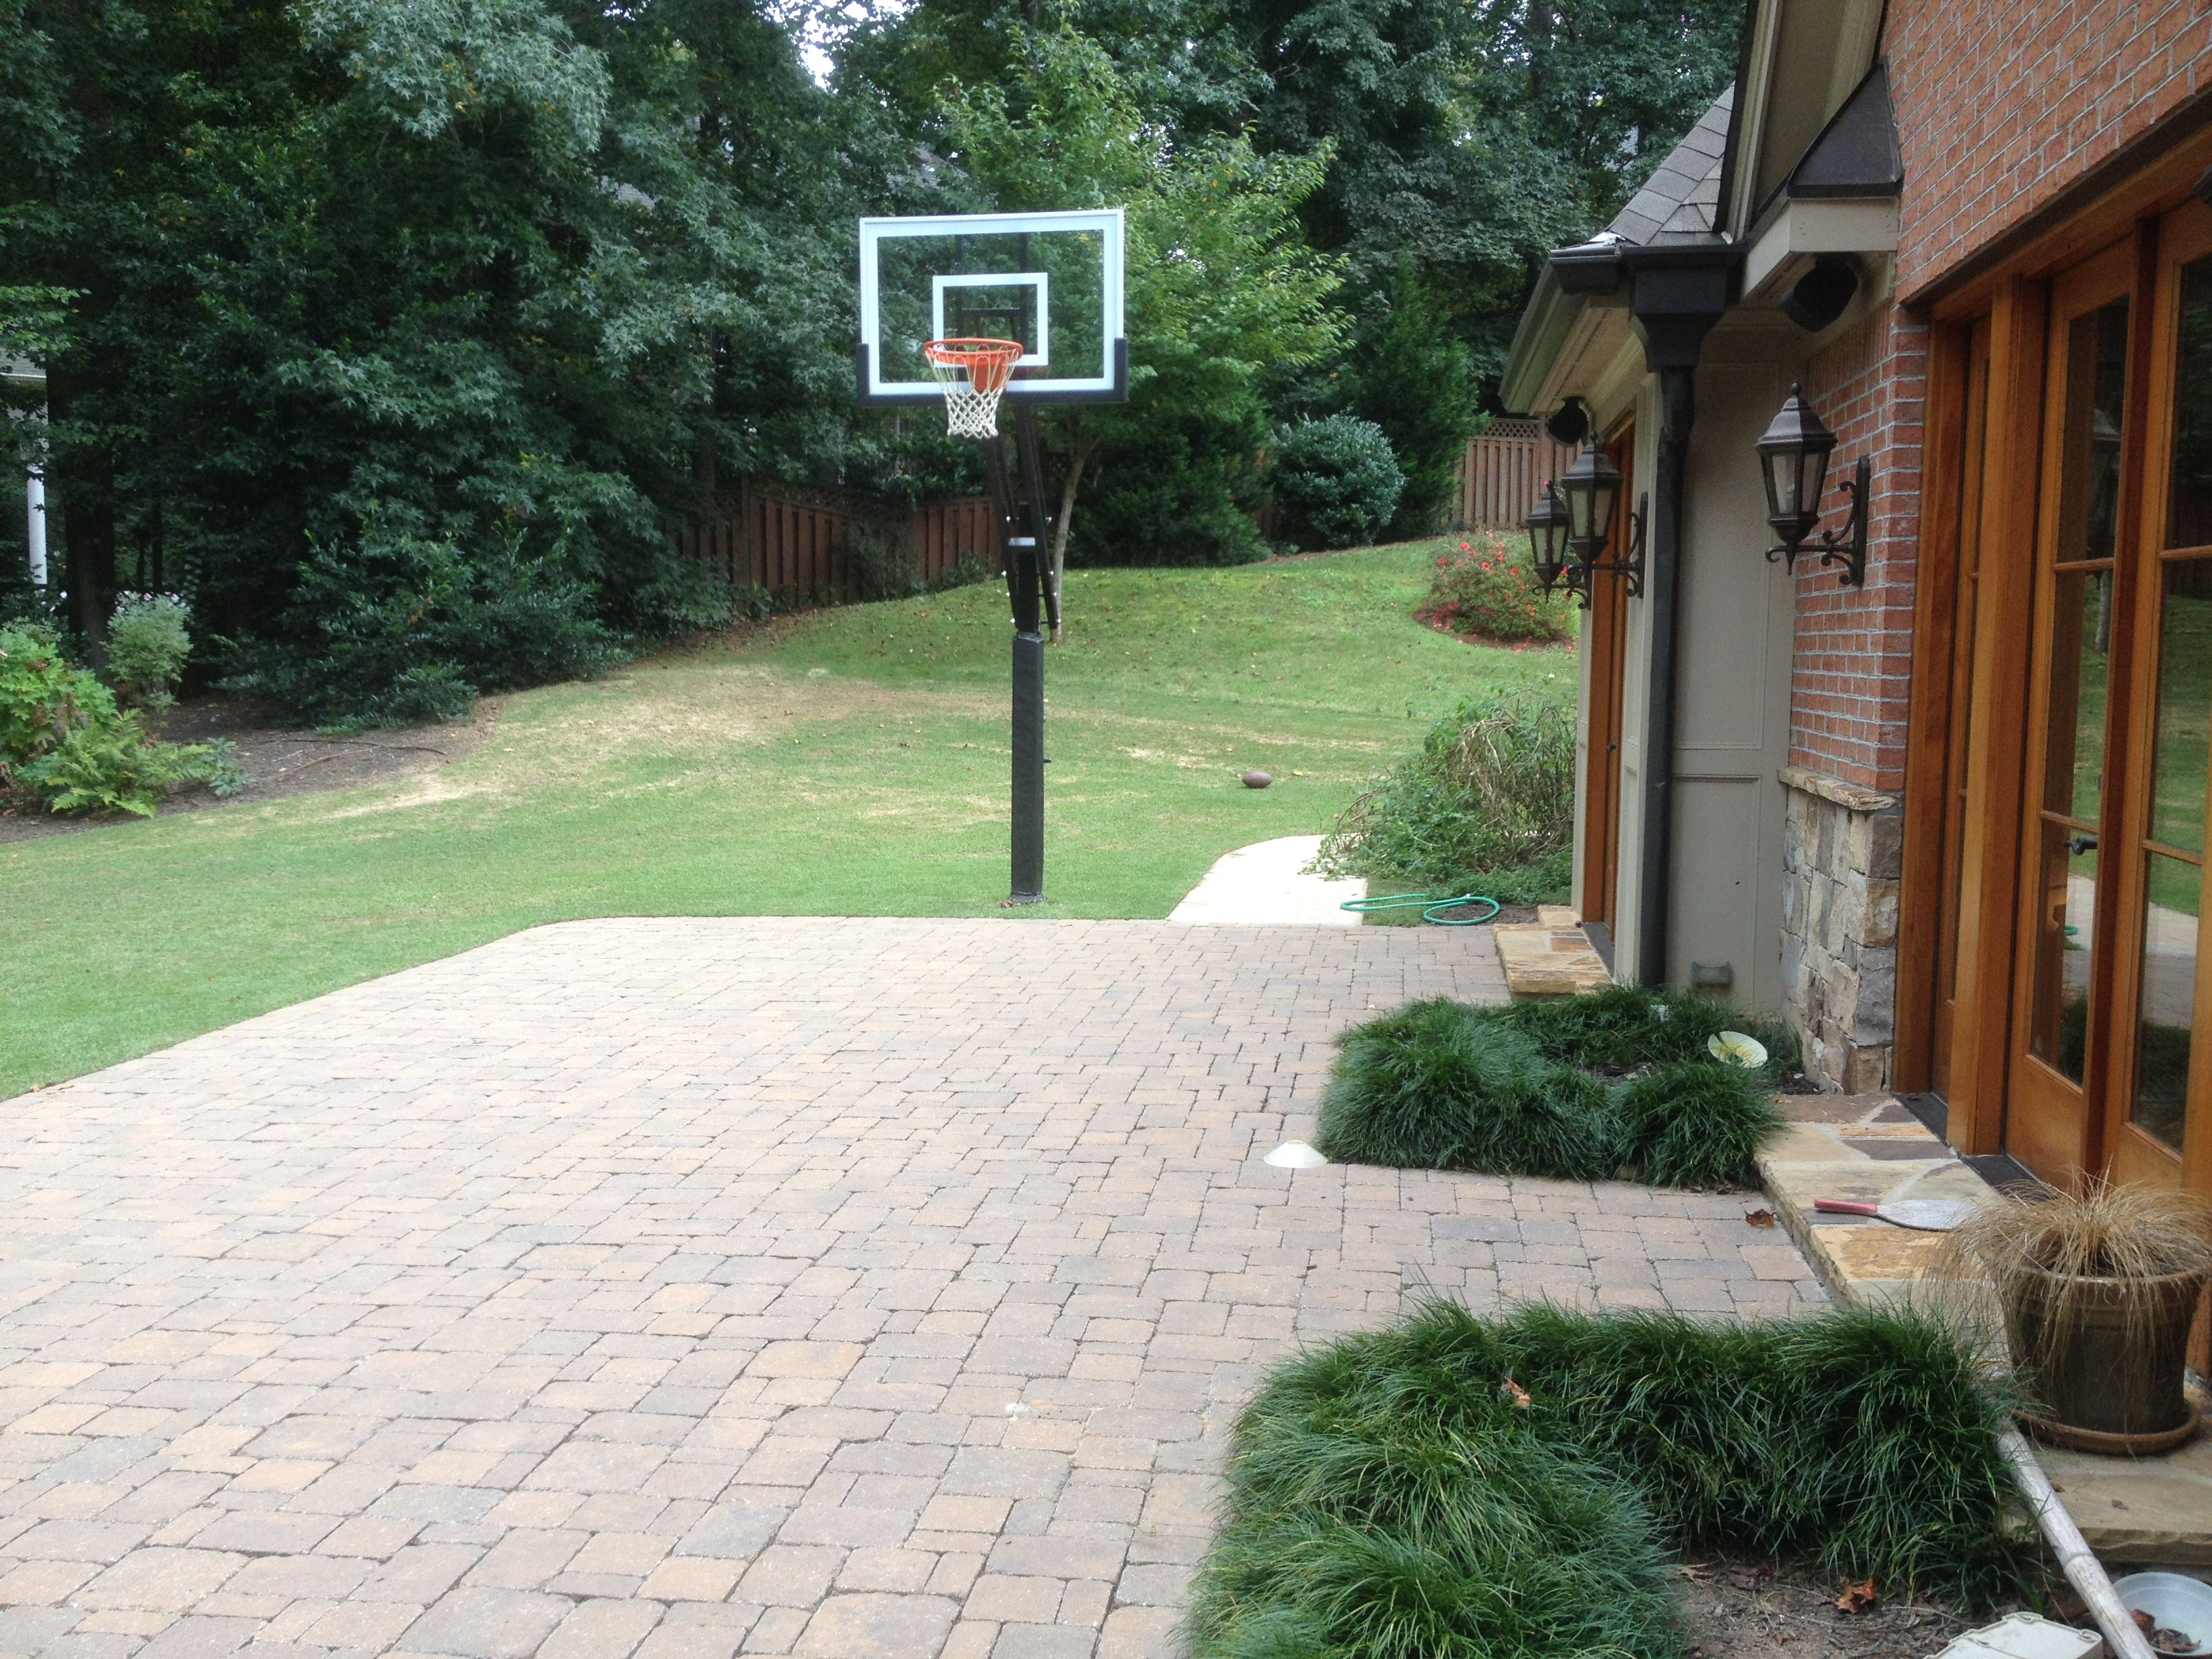 A Pro Dunk Silver Basketball System Compliments The End Of This Cobbled Brick Backyard Slab